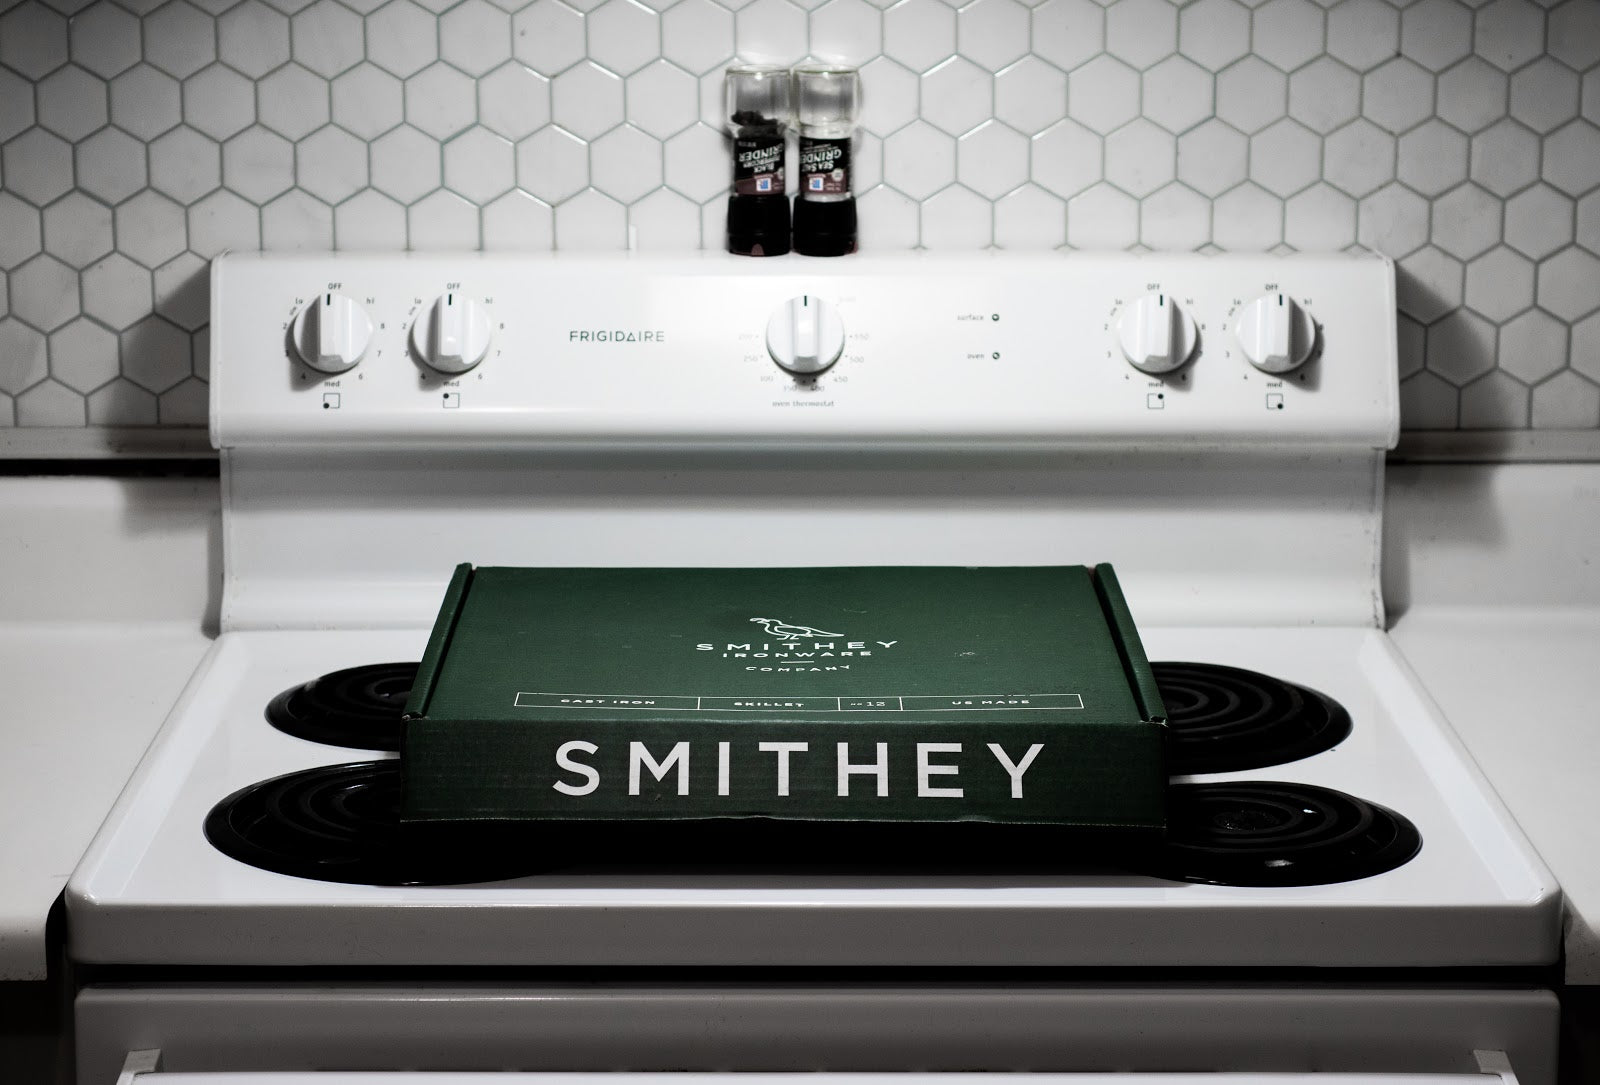 Smithey Ironware No. 12 Cast Iron Skillet Review